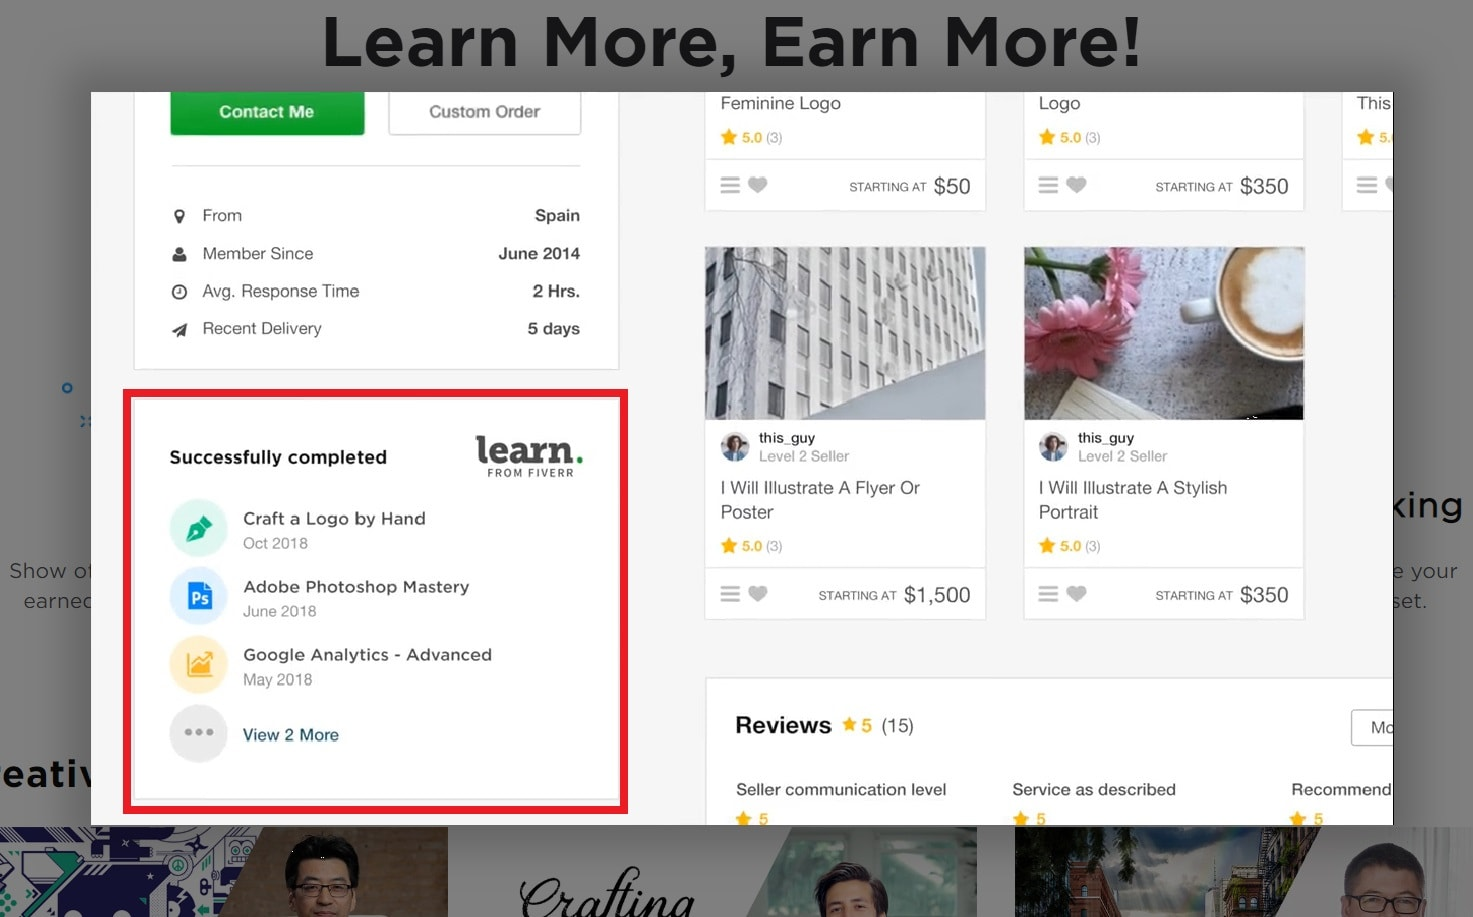 Online Course Comparison – Fiverr Learn vs Udemy vs Coursera-image12